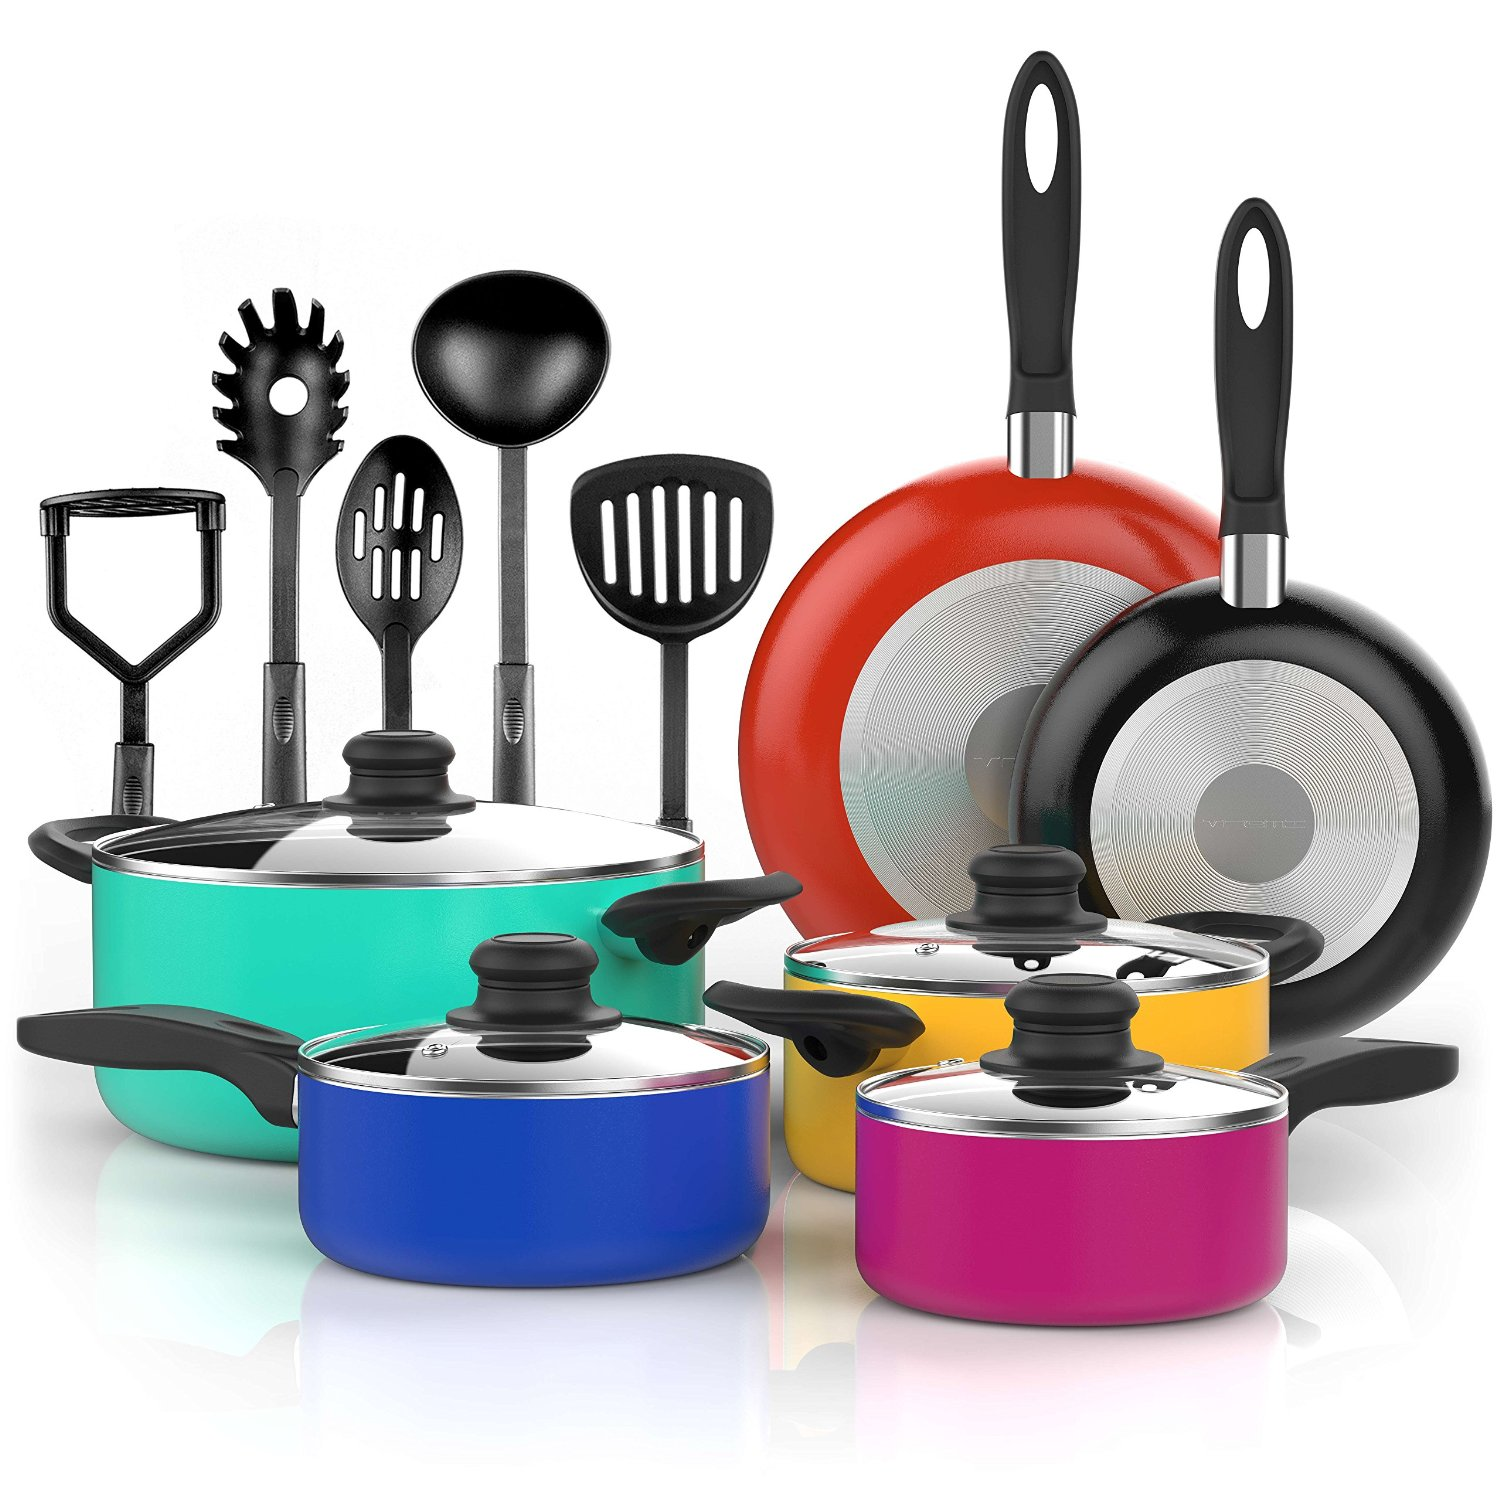 O Shopping Ilo Kitchen Set: Top 10 Best Cookware Sets Review